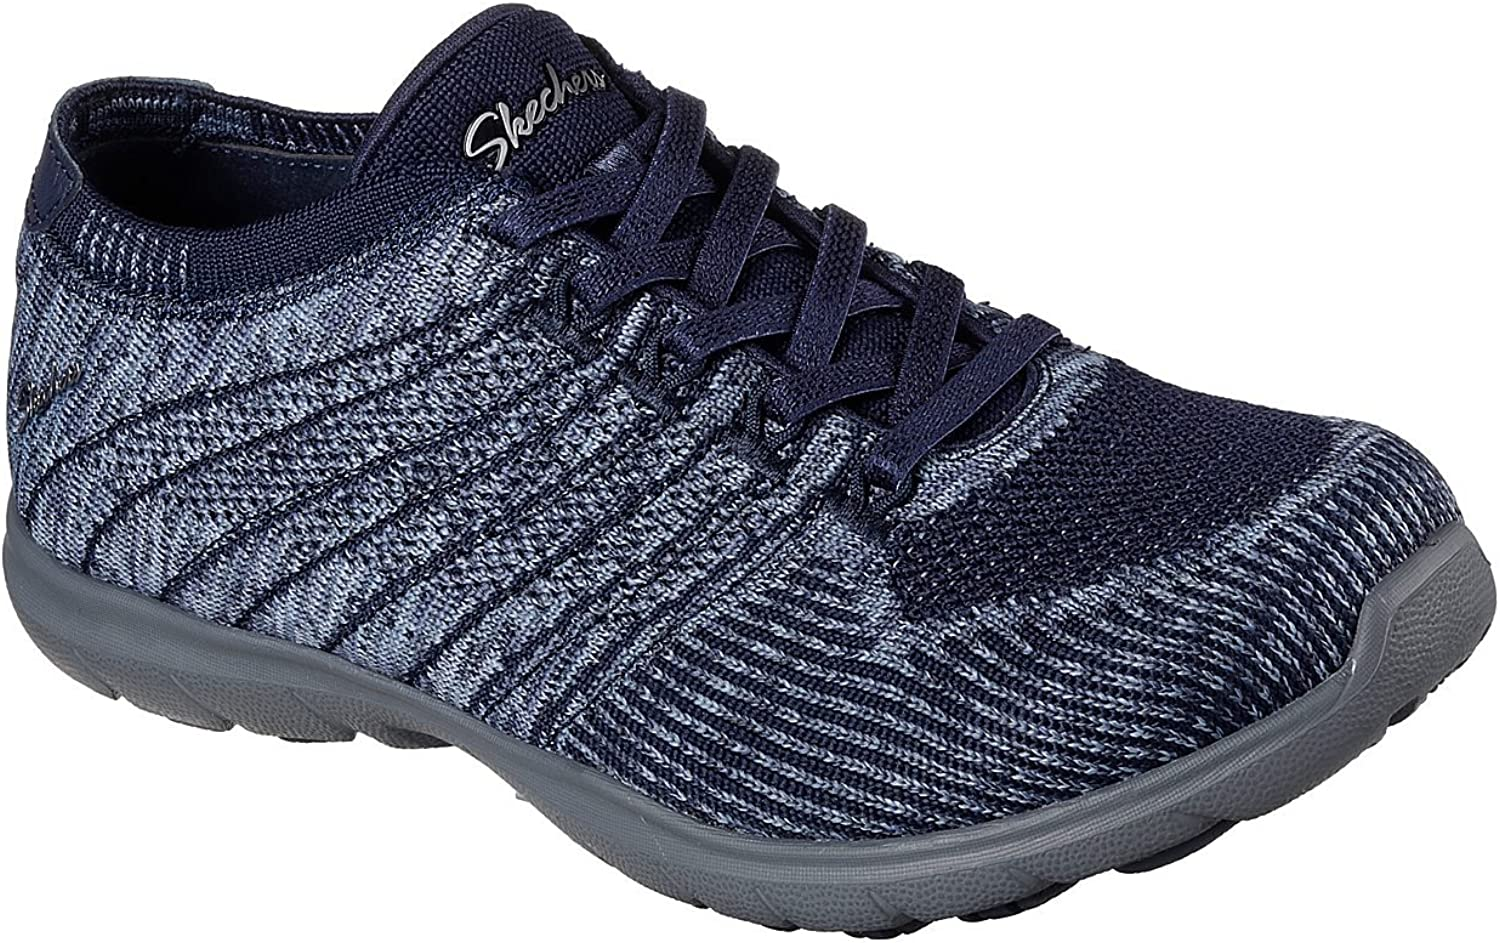 Skechers Relaxed Fit Dreamstep Cool Cutie damen Lace Up Turnschuhe Navy 5  | Guter weltweiter Ruf